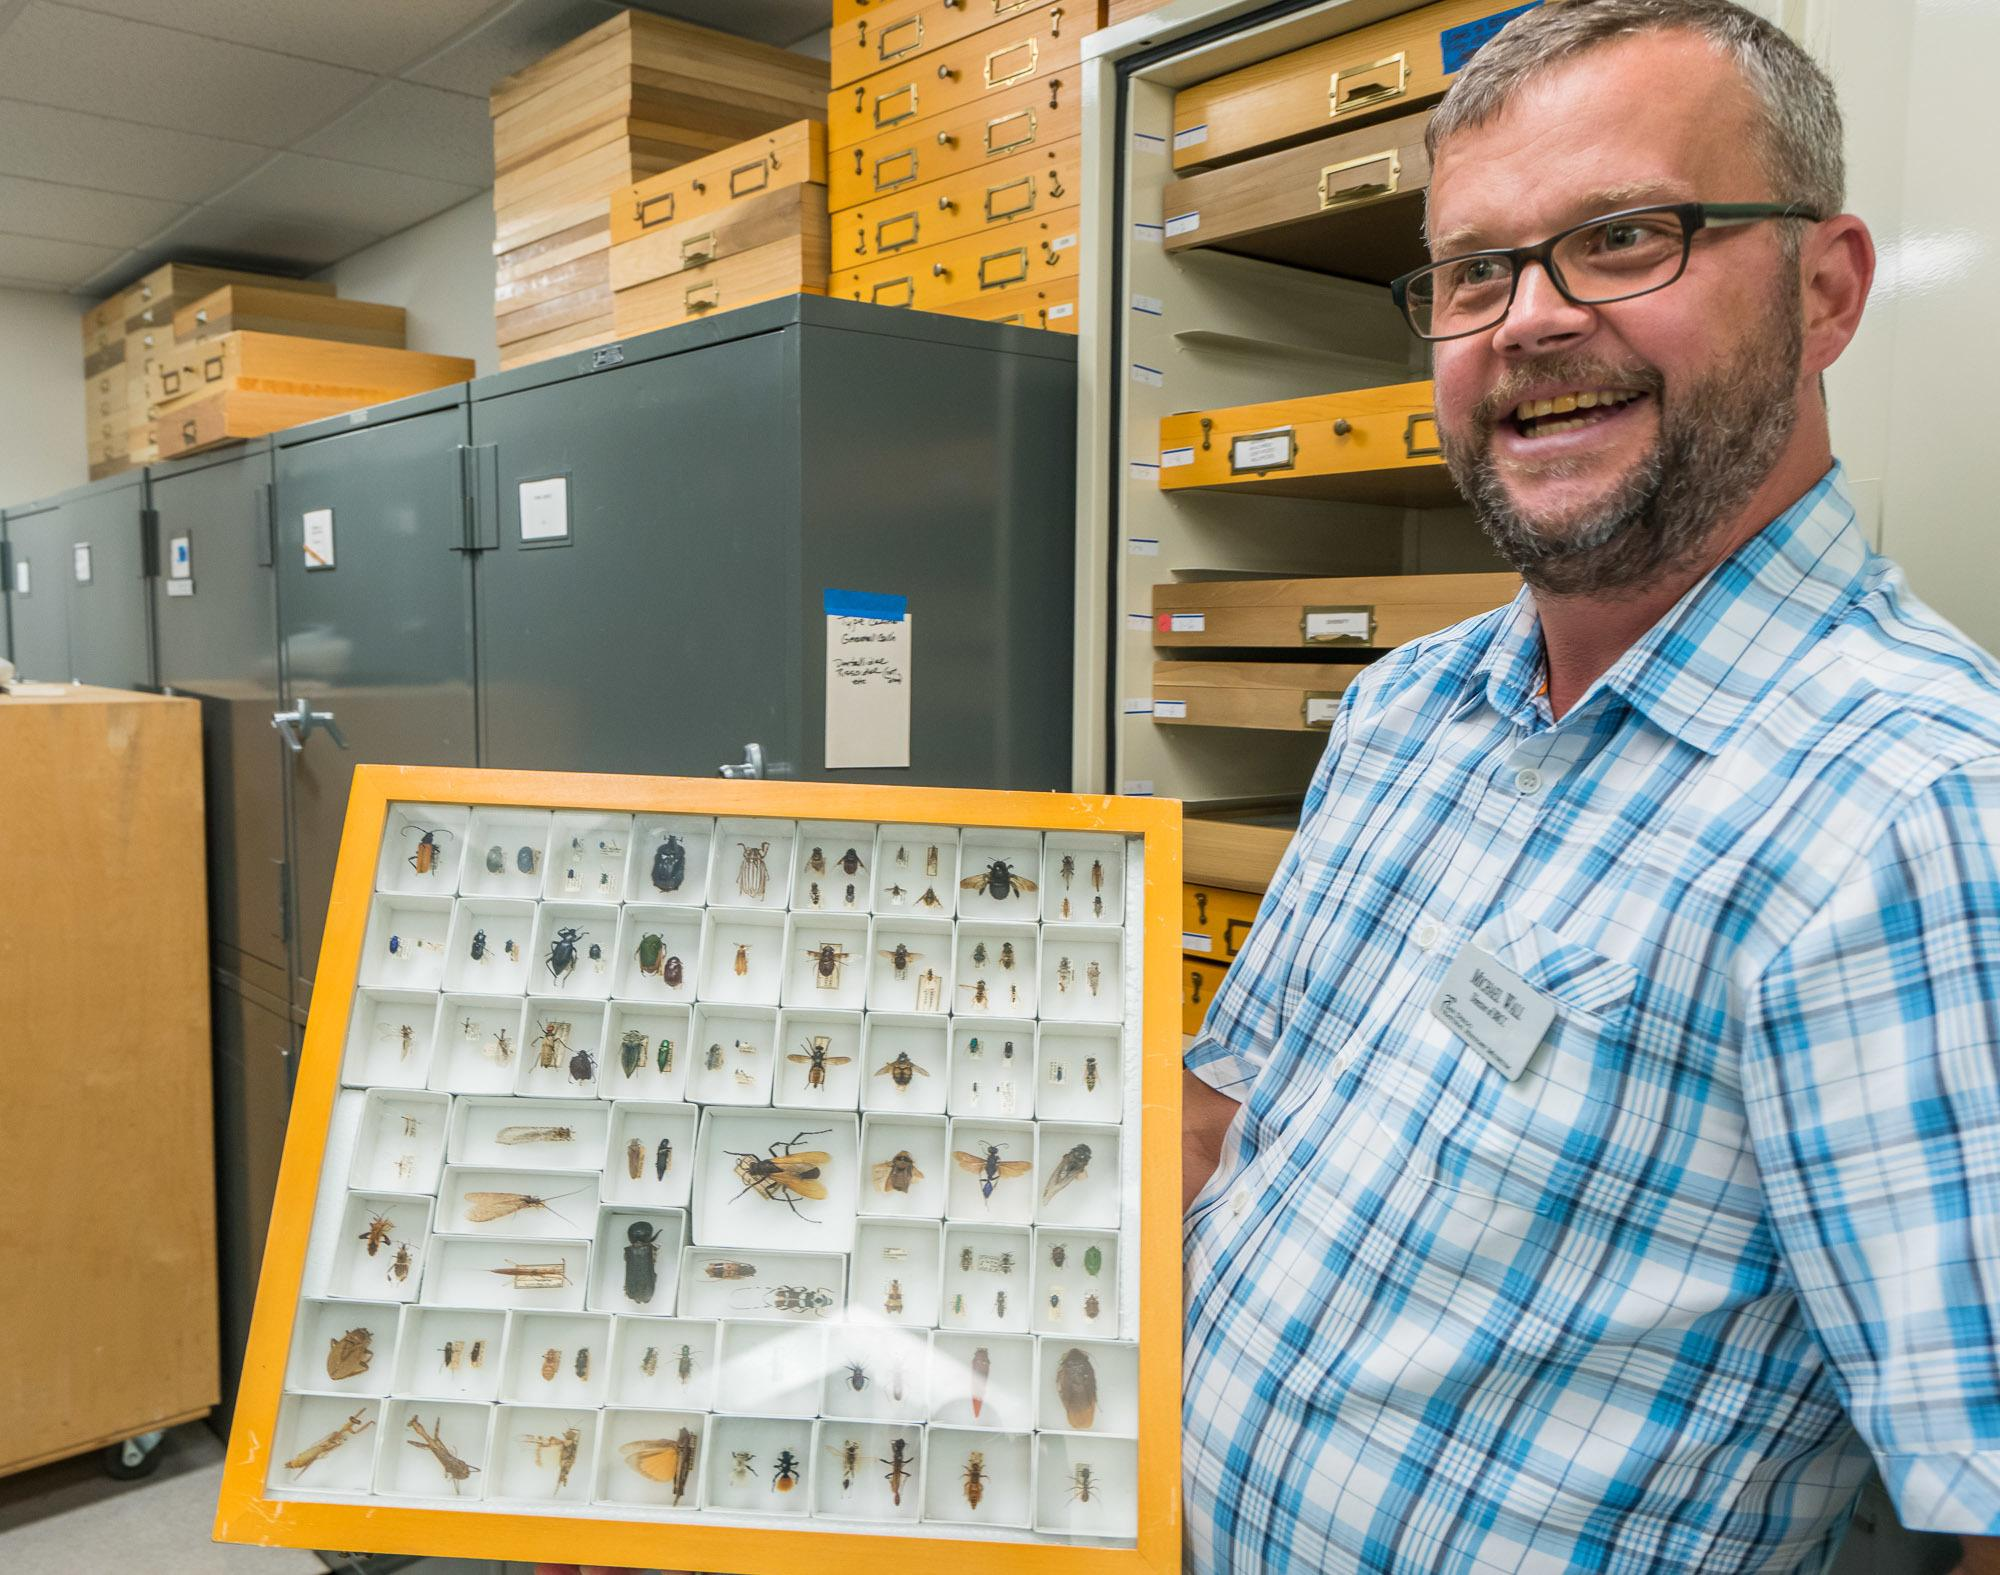 A small part of the San Diego Natural History Museum's Entomology collection.